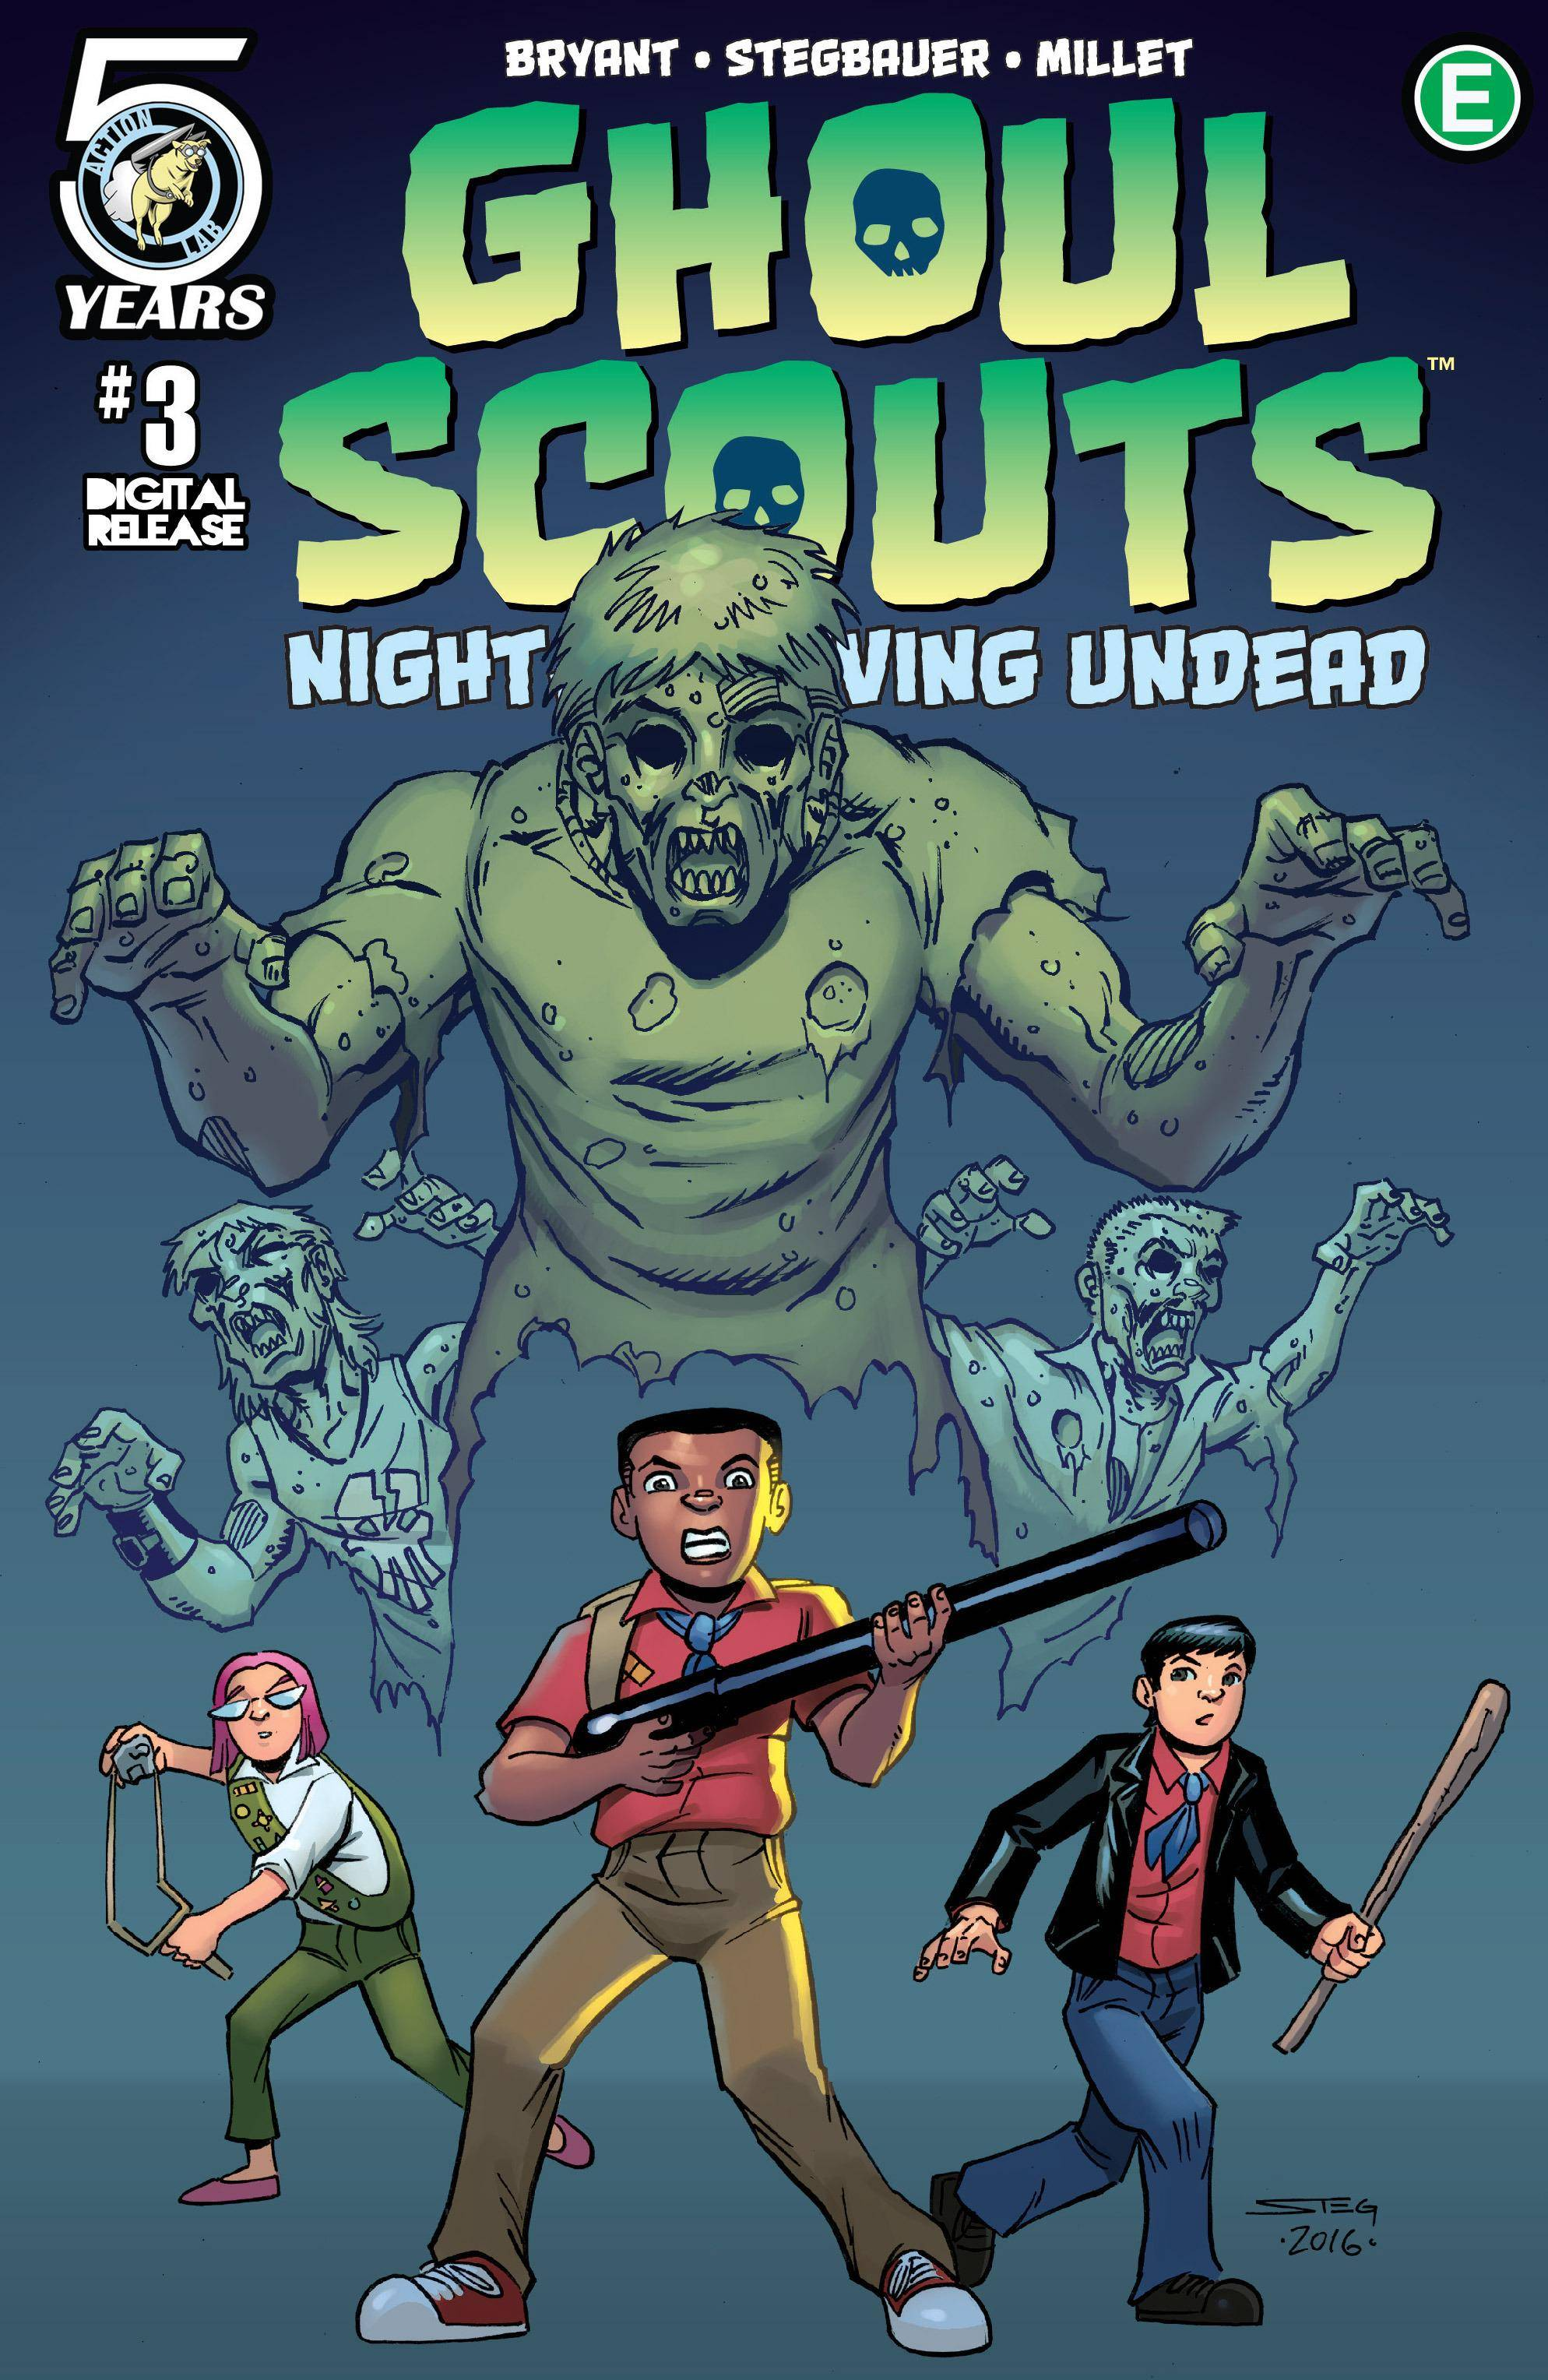 Ghoul Scouts - Night of the Unliving Undead 003 2016 digital dargh-Empire